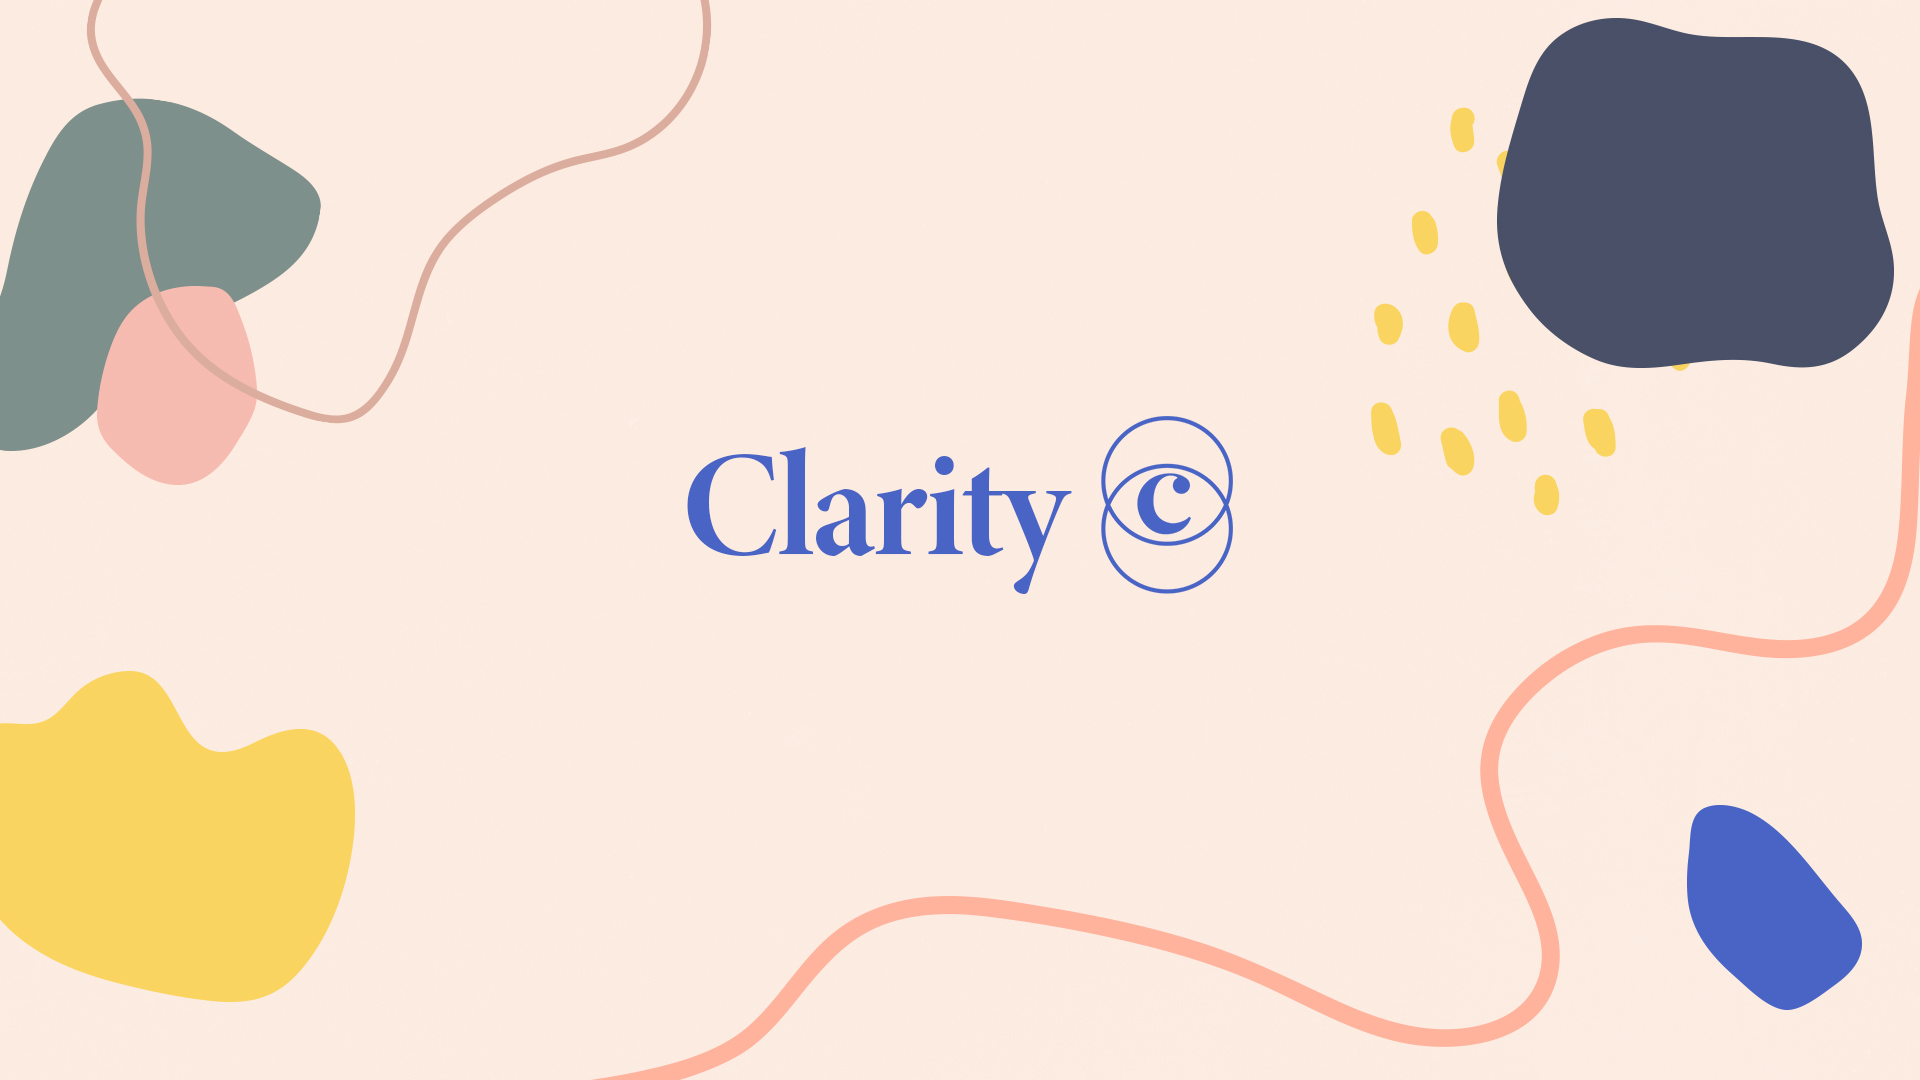 Clarity Squiggles 1920x1080